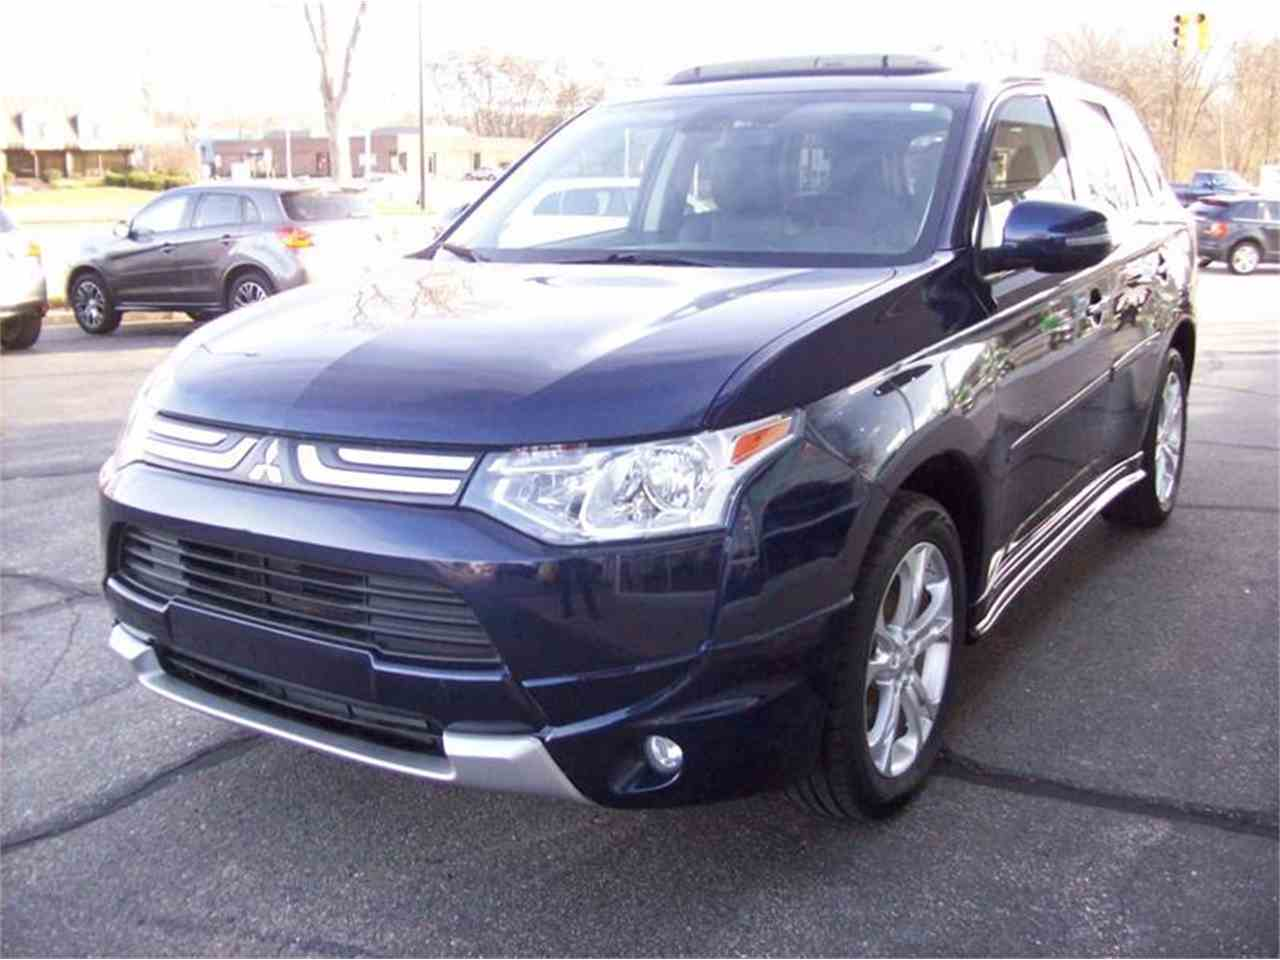 Large Picture of 2014 Outlander - $17,495.00 Offered by Verhage Mitsubishi - MB5J